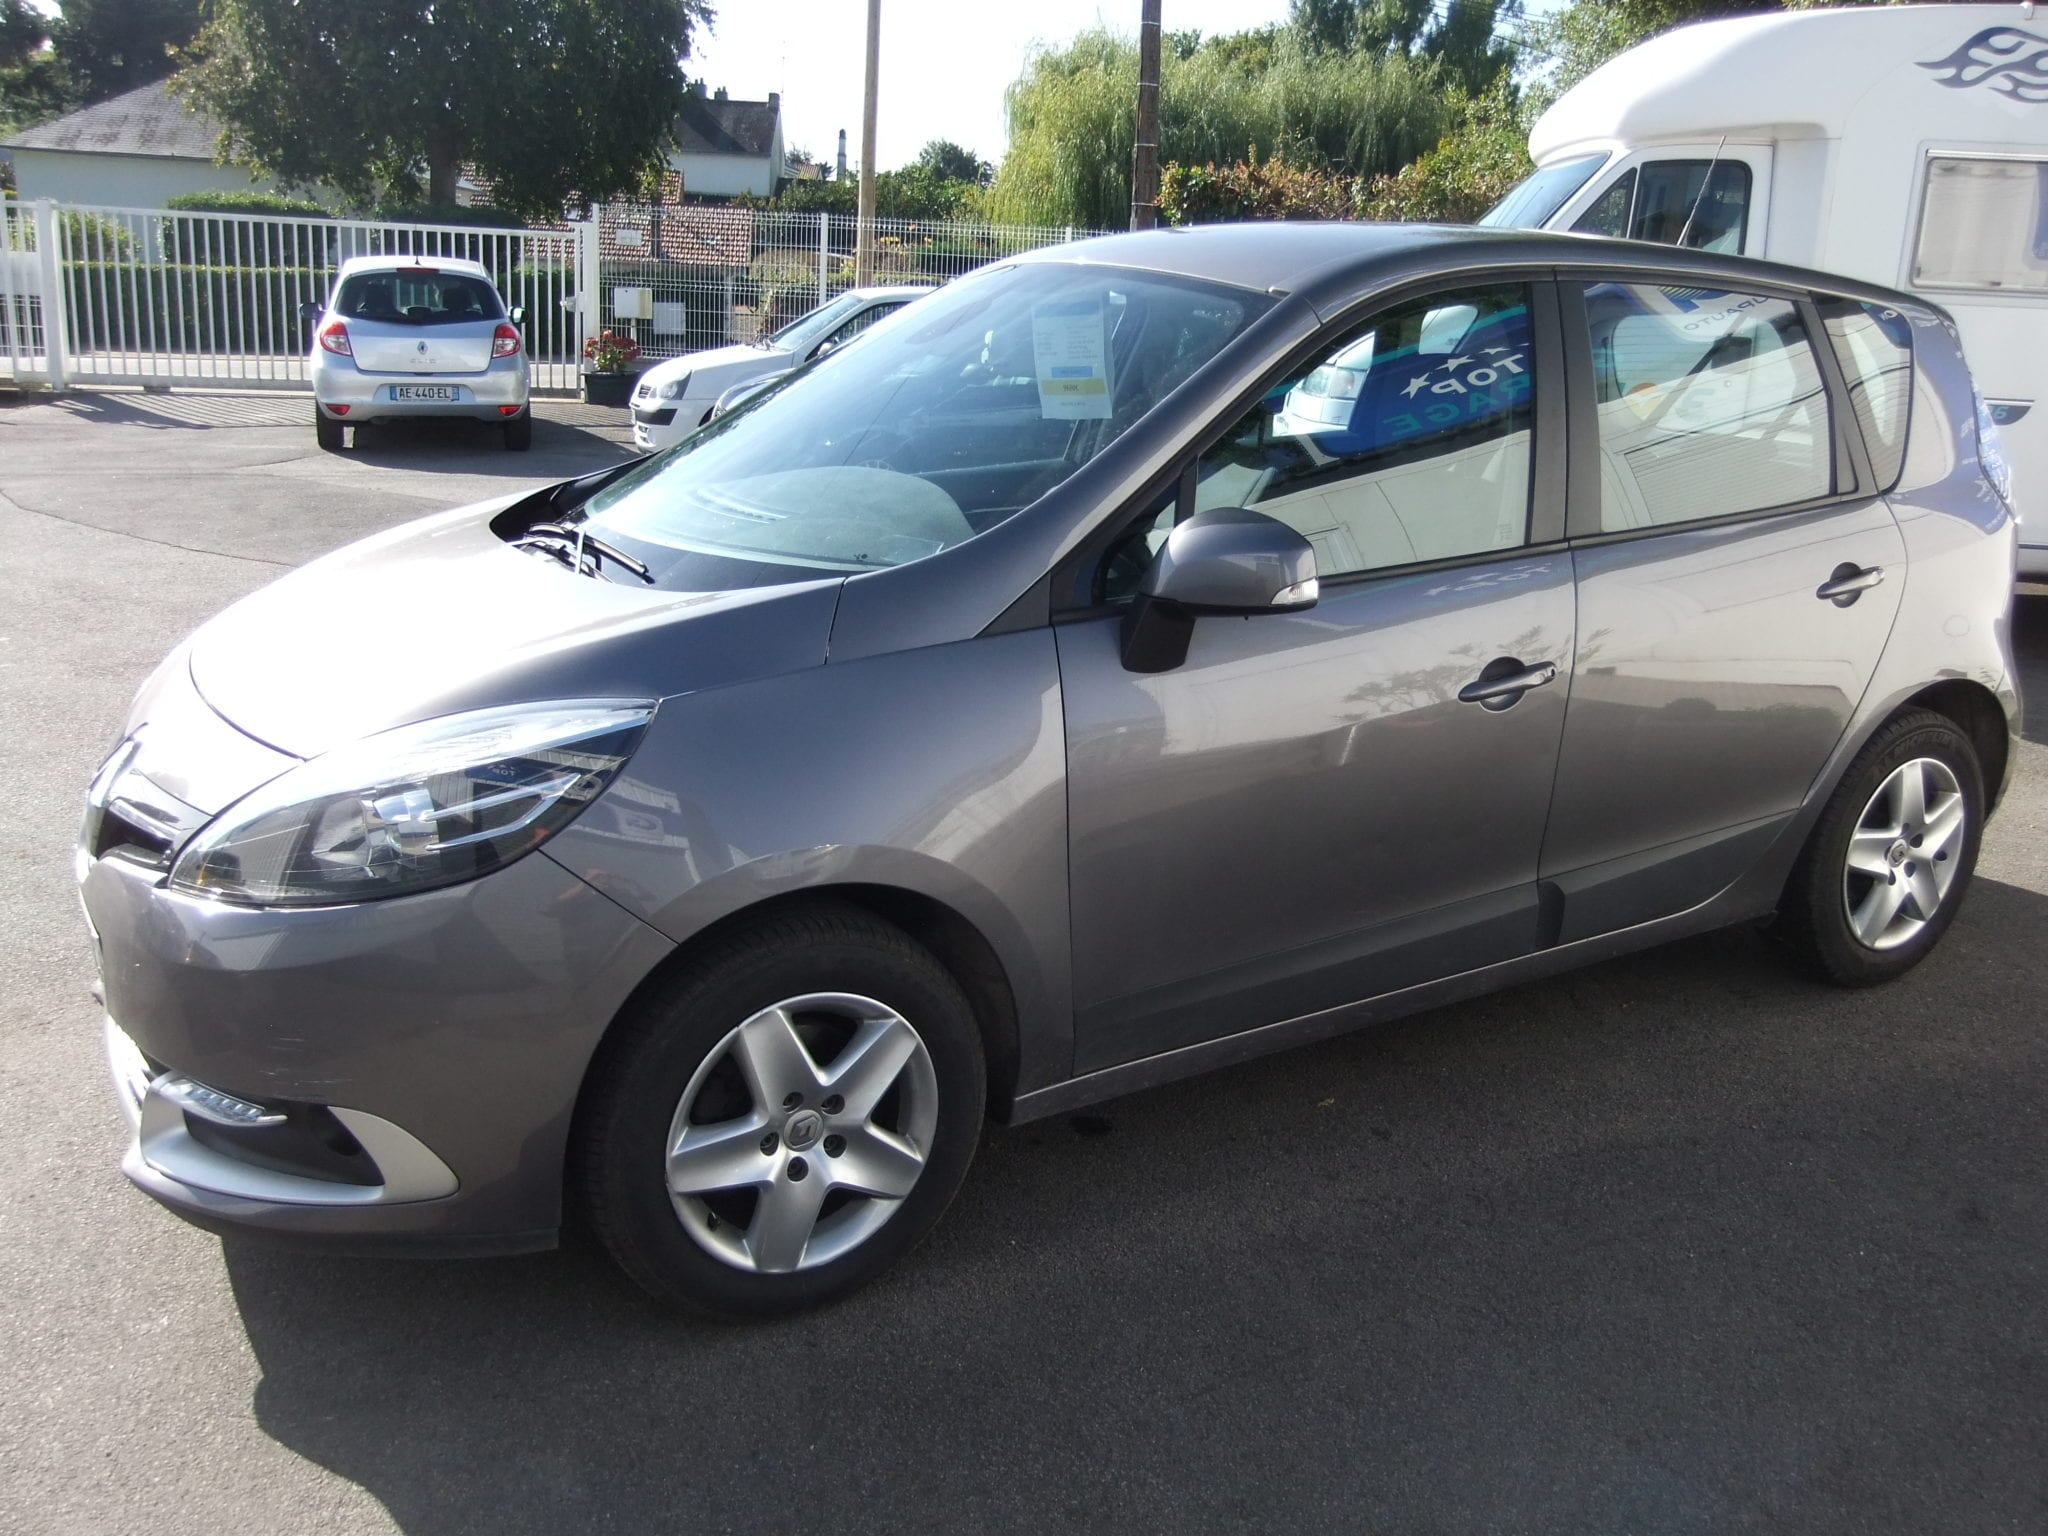 Renault SCENIC 3 DCI 110 Energy Business ECO 2  - Image 2